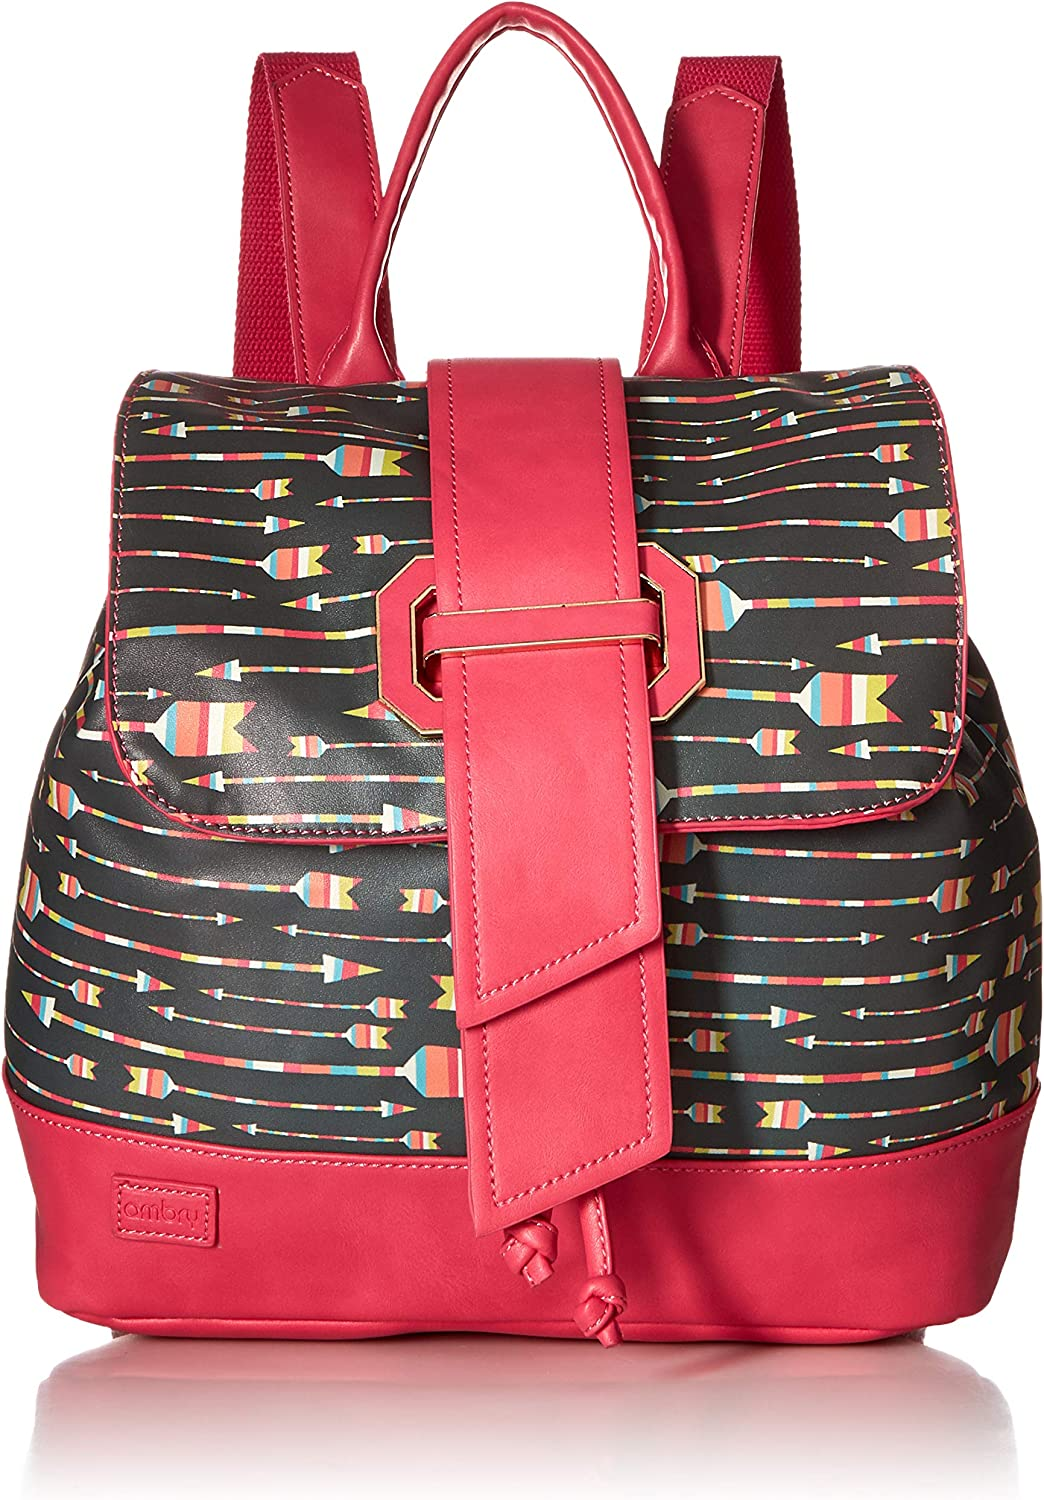 Ambry Backpack Purse for Women, Vegan Leather Drawstring Congreenible Fashion Backpack